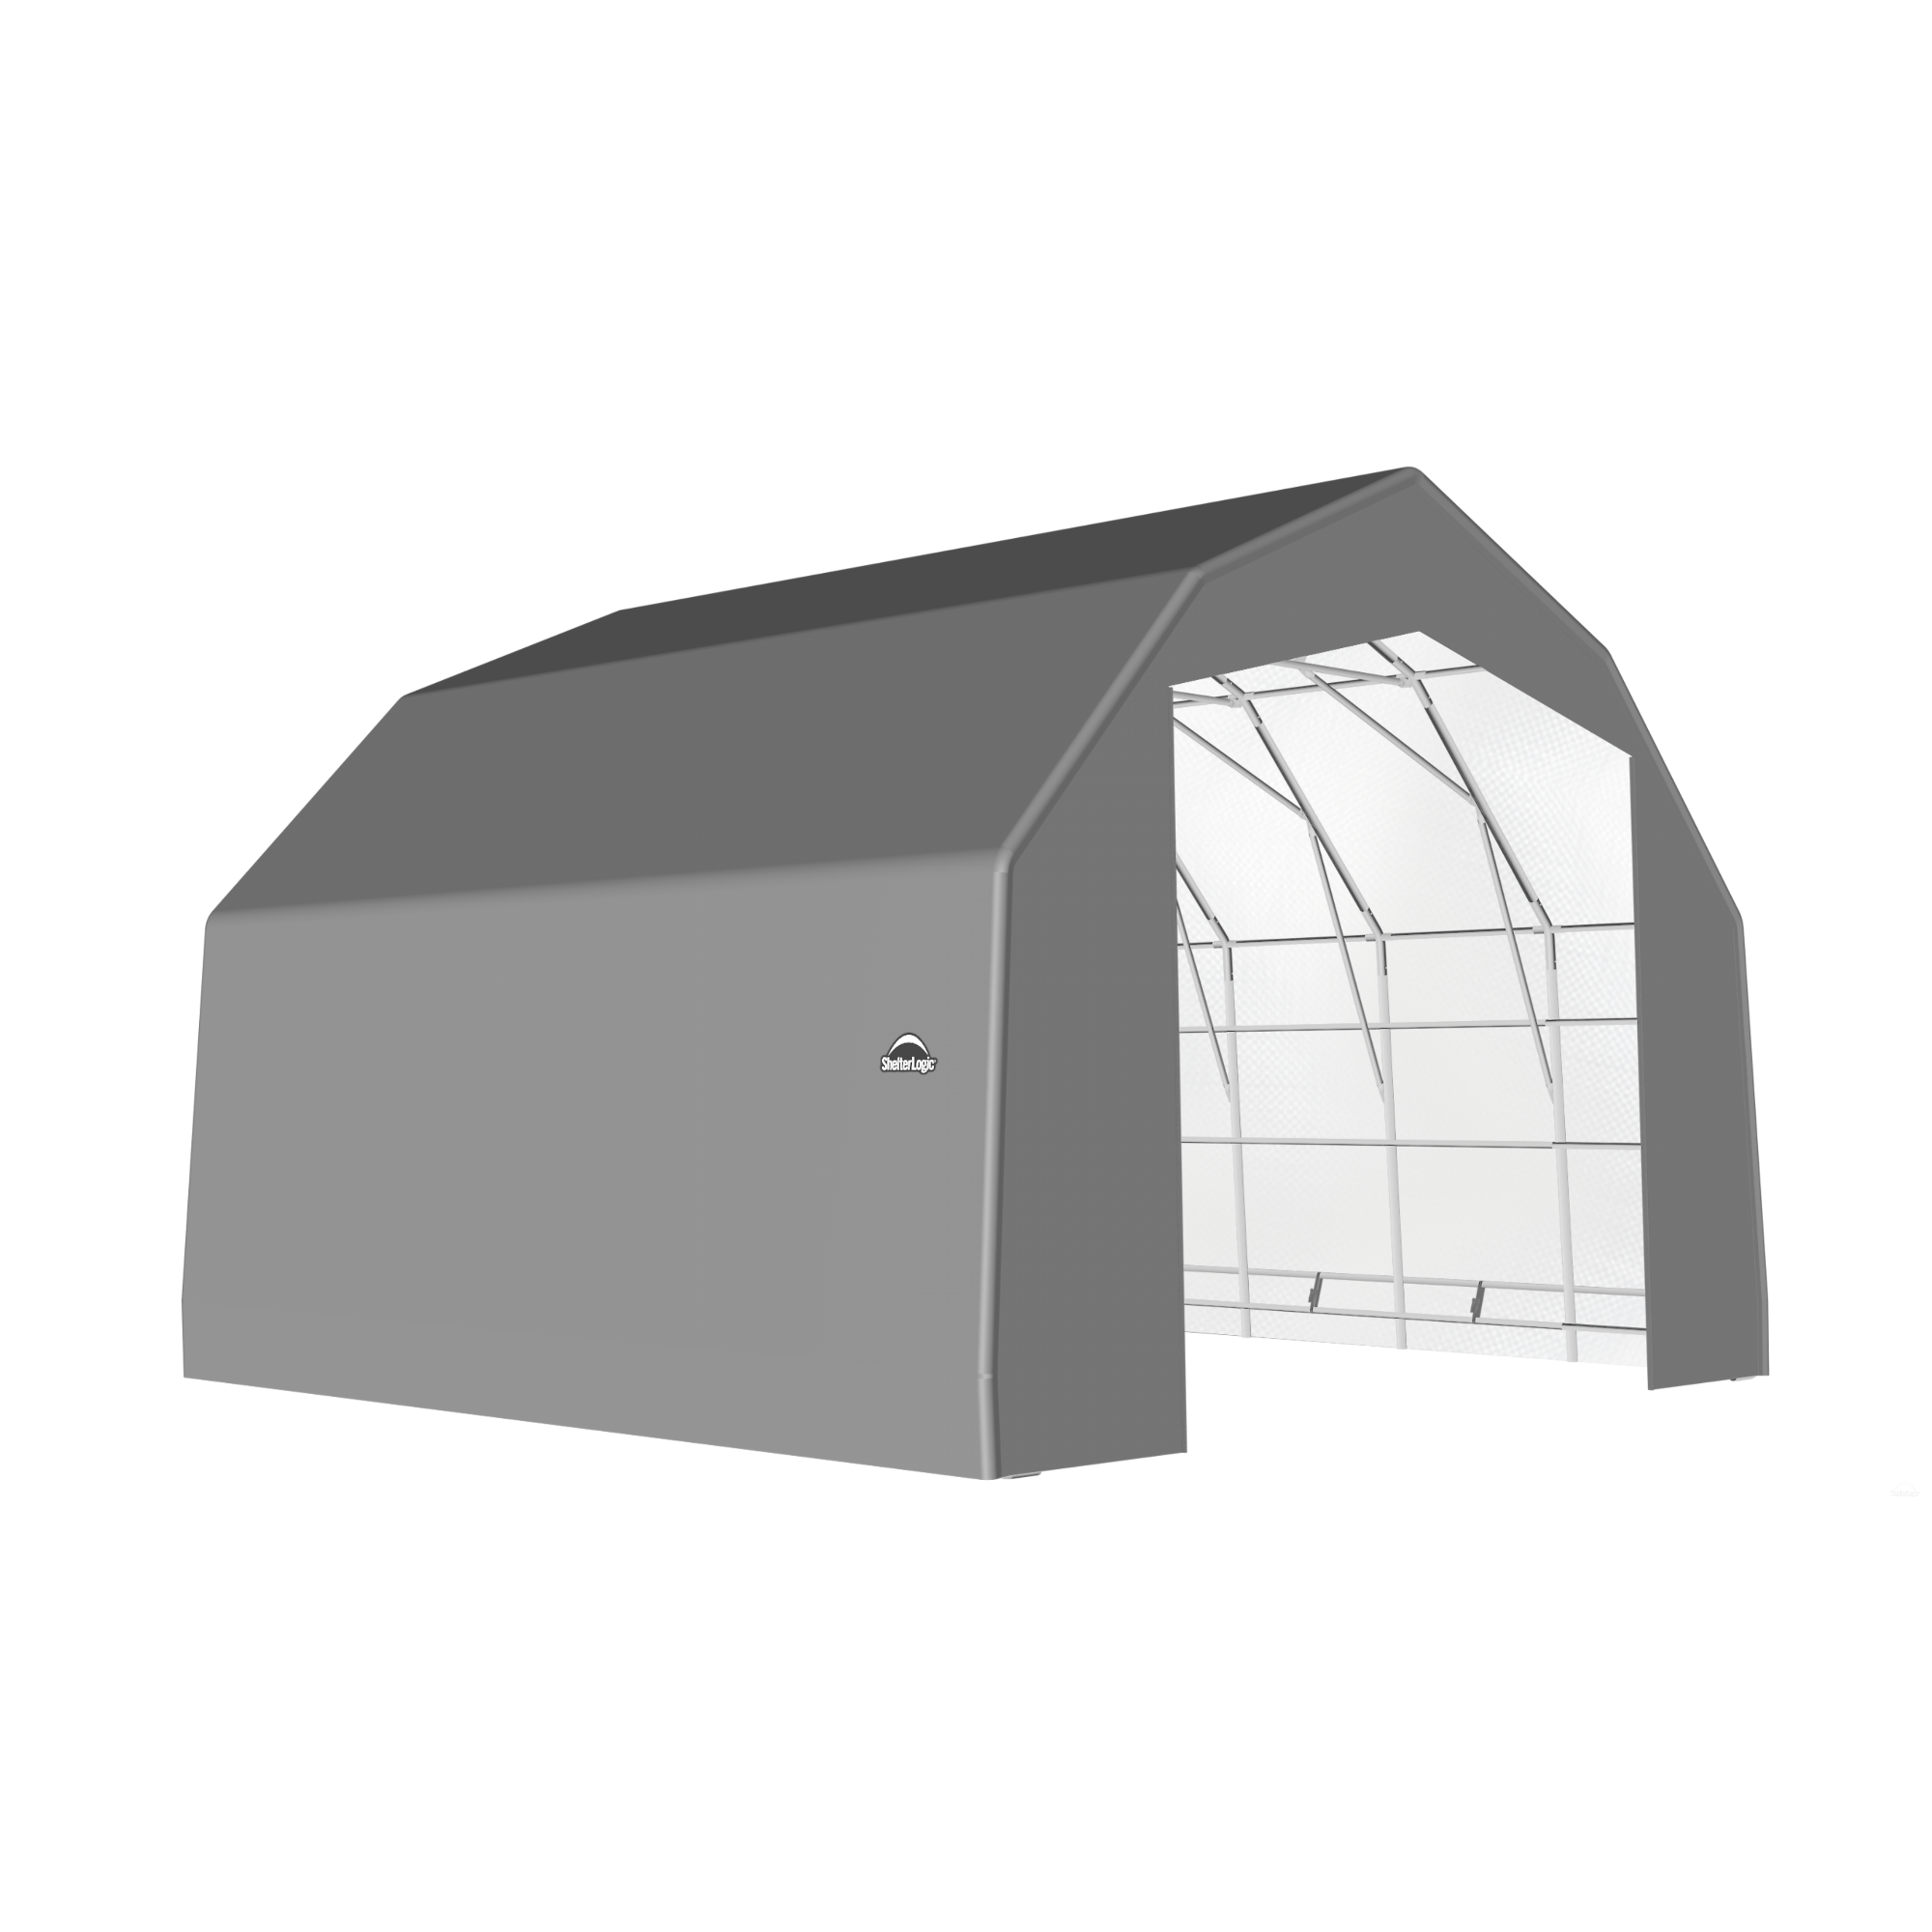 SP Barn 25X24X17 Gray 14 oz PE Shelter